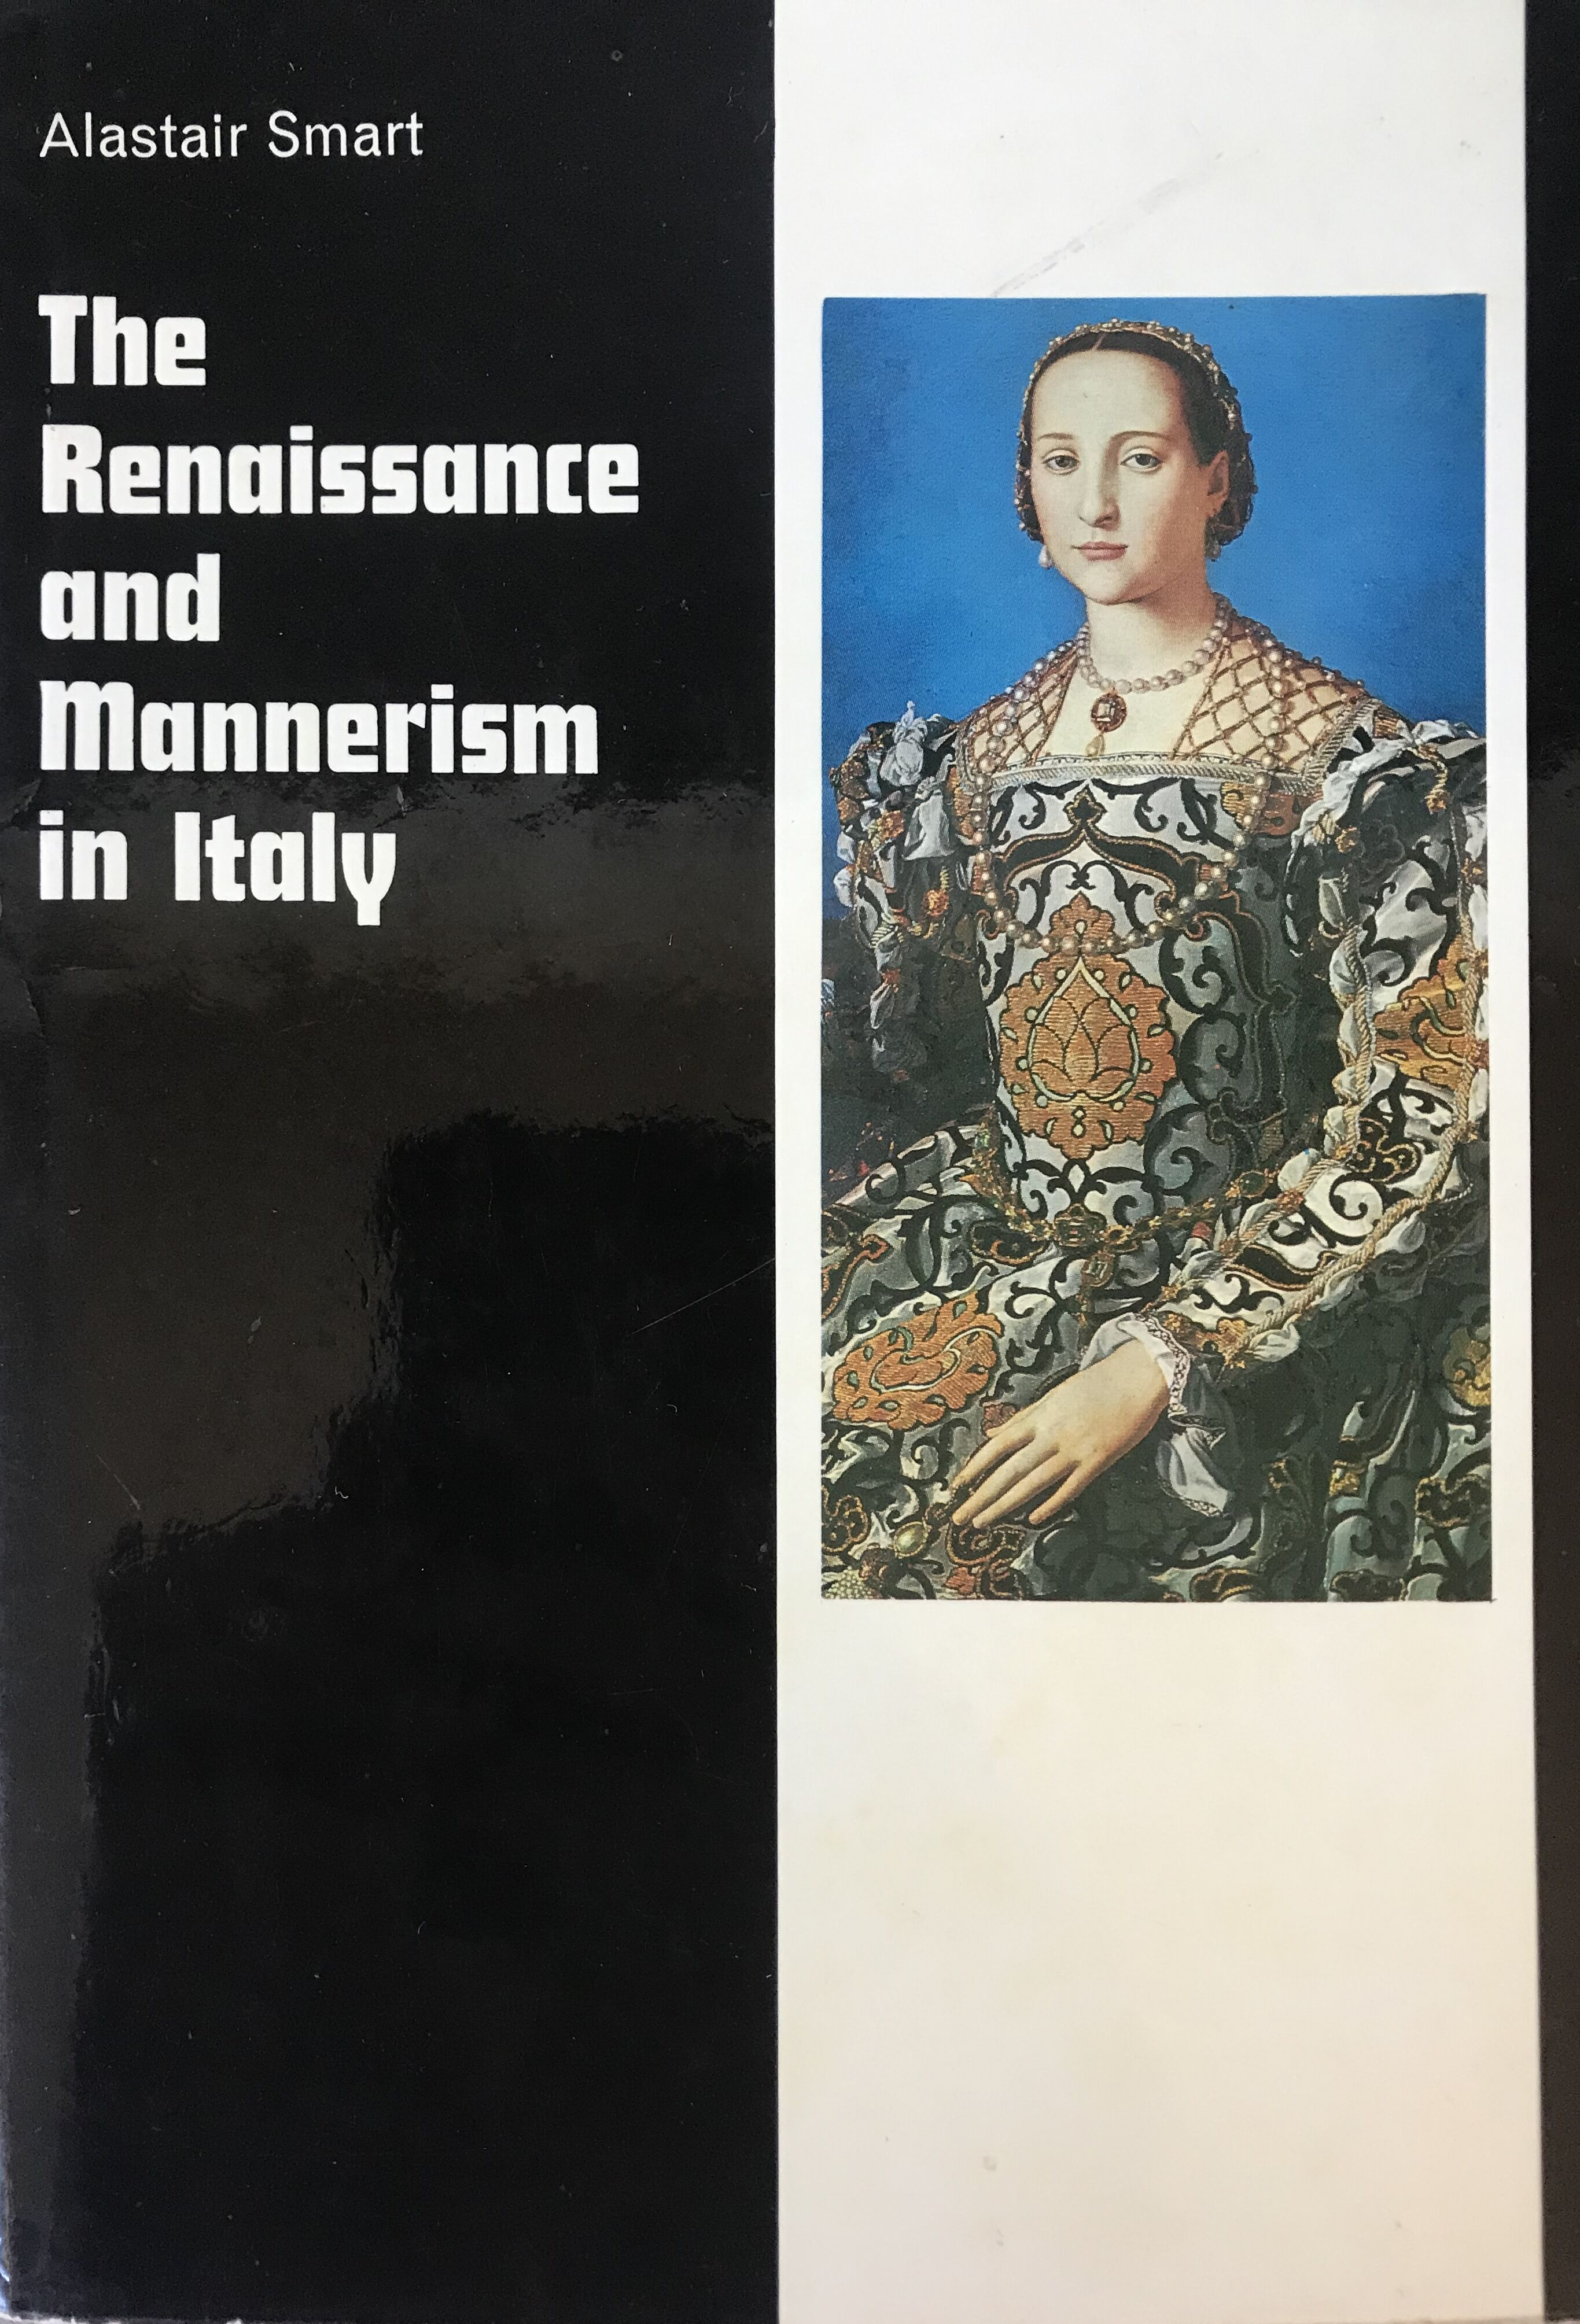 The Renaissance and Mannerism in Italy